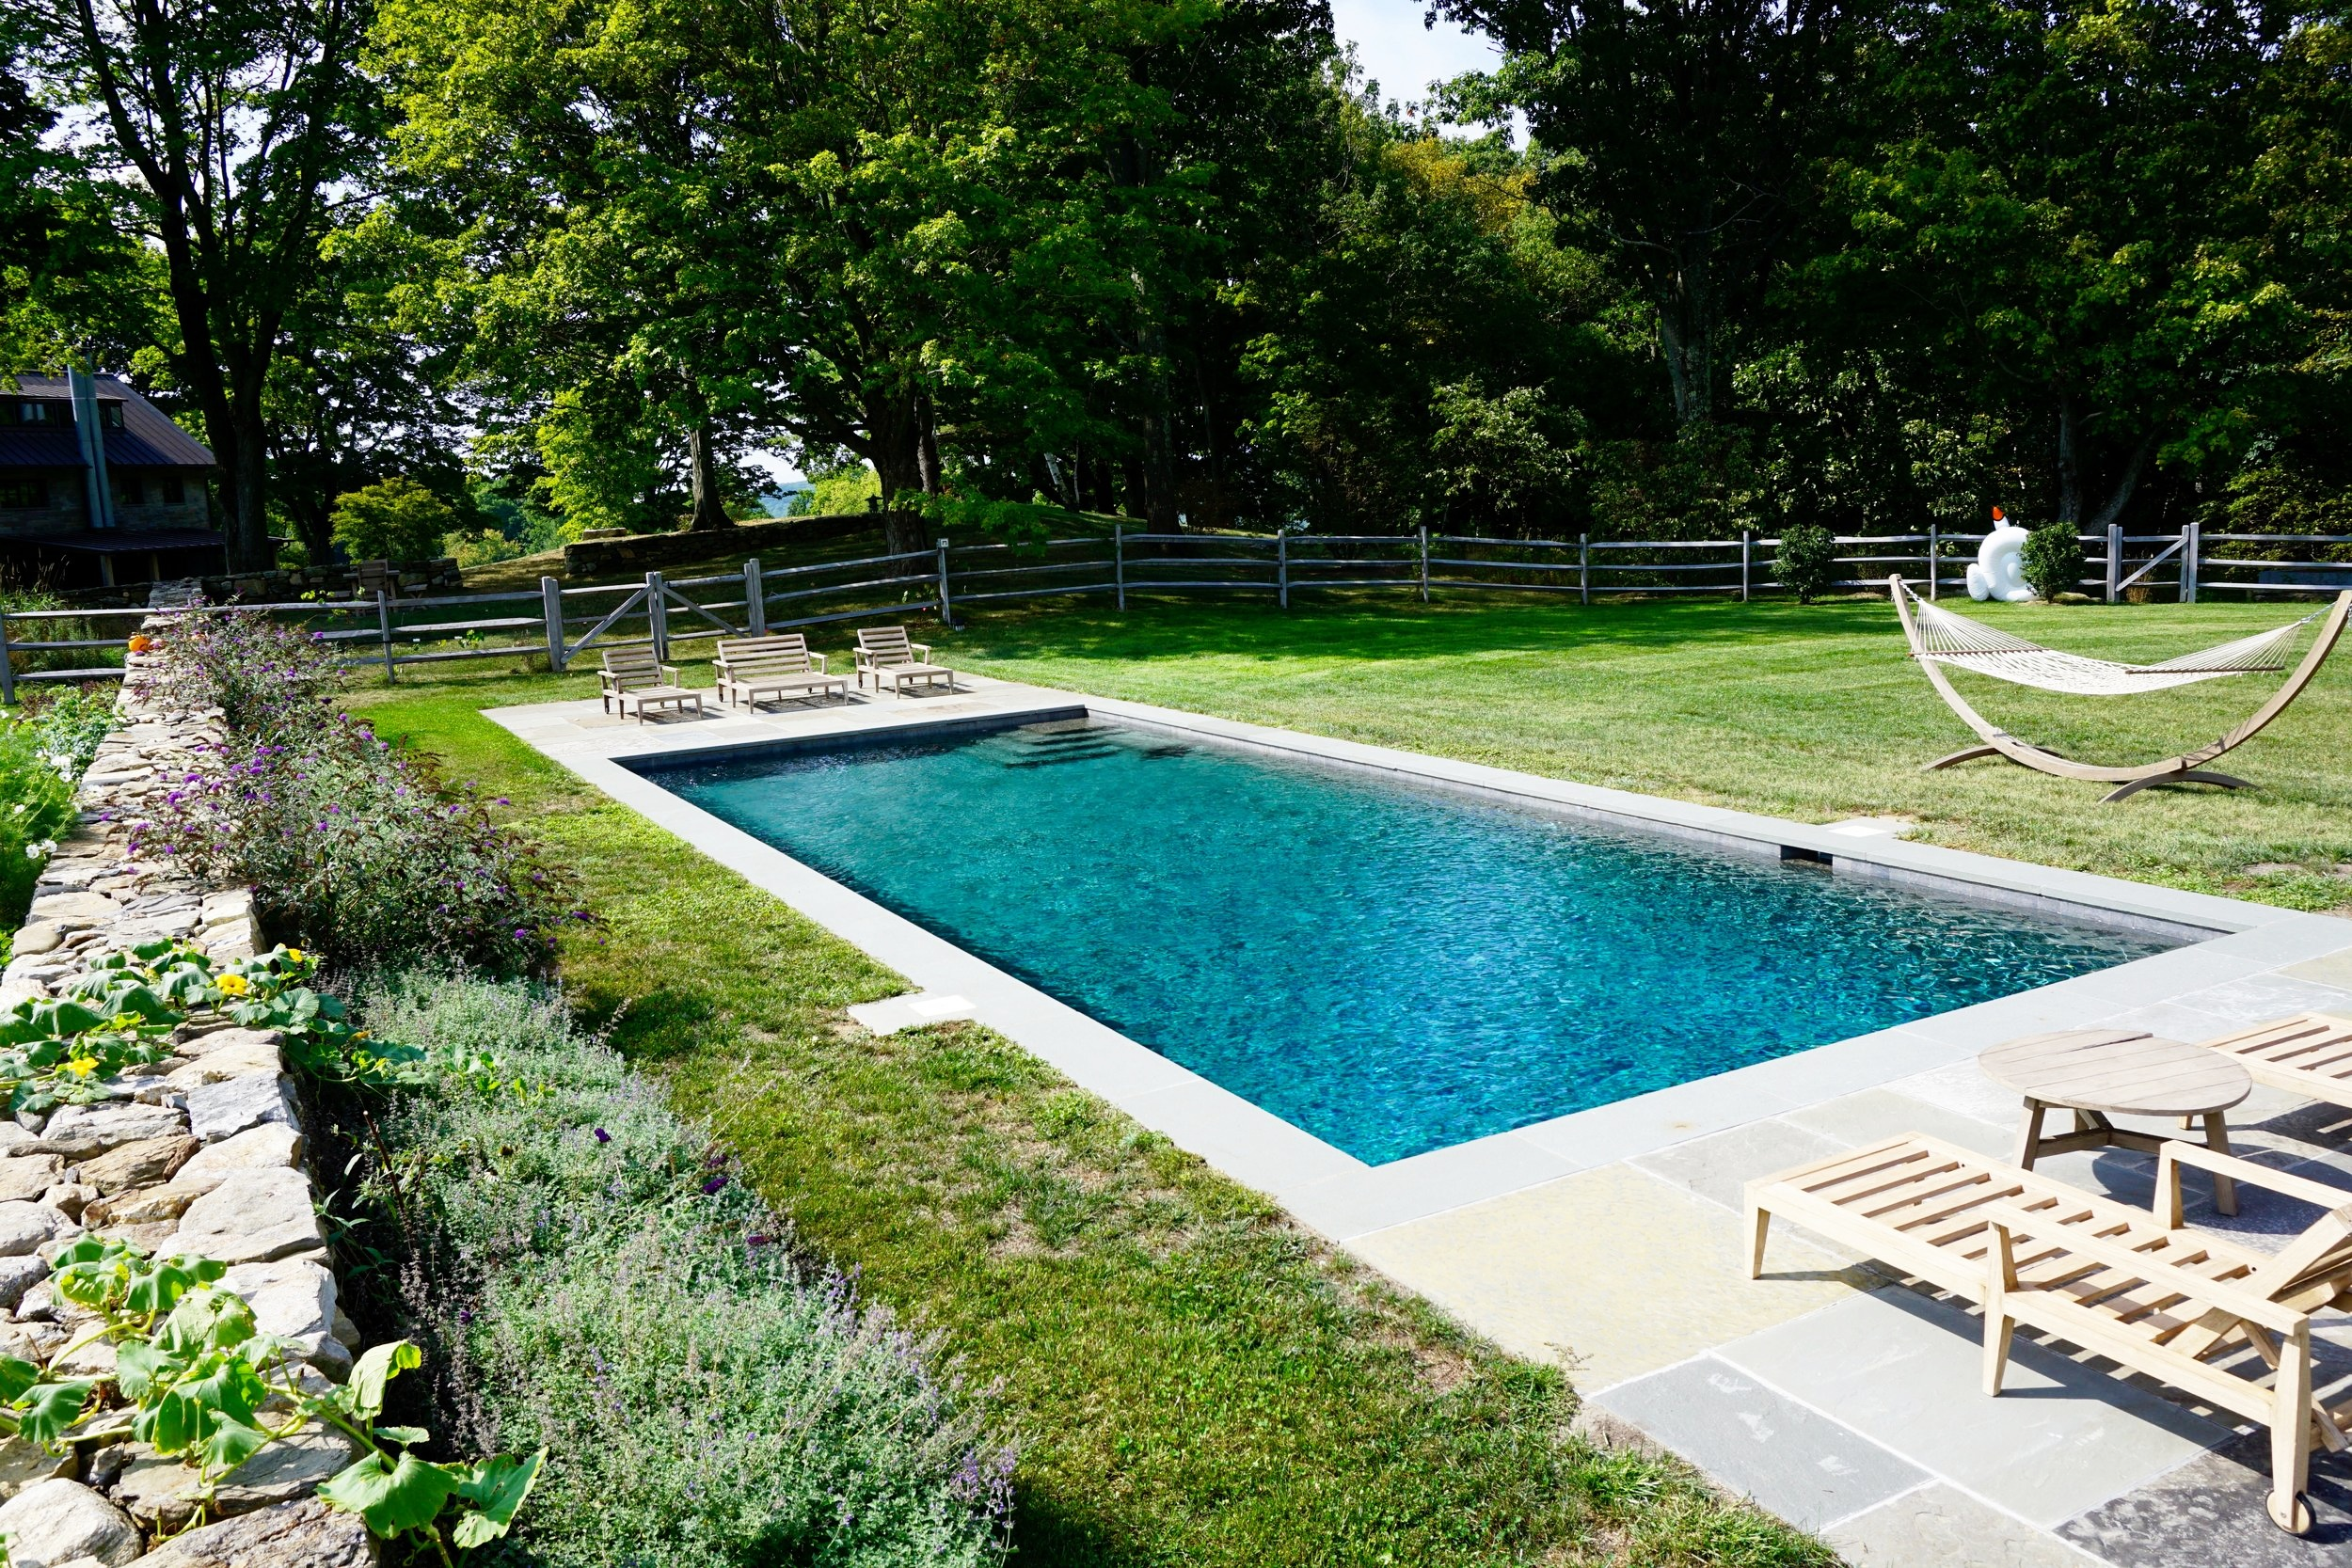 A pool without an automatic pool cover